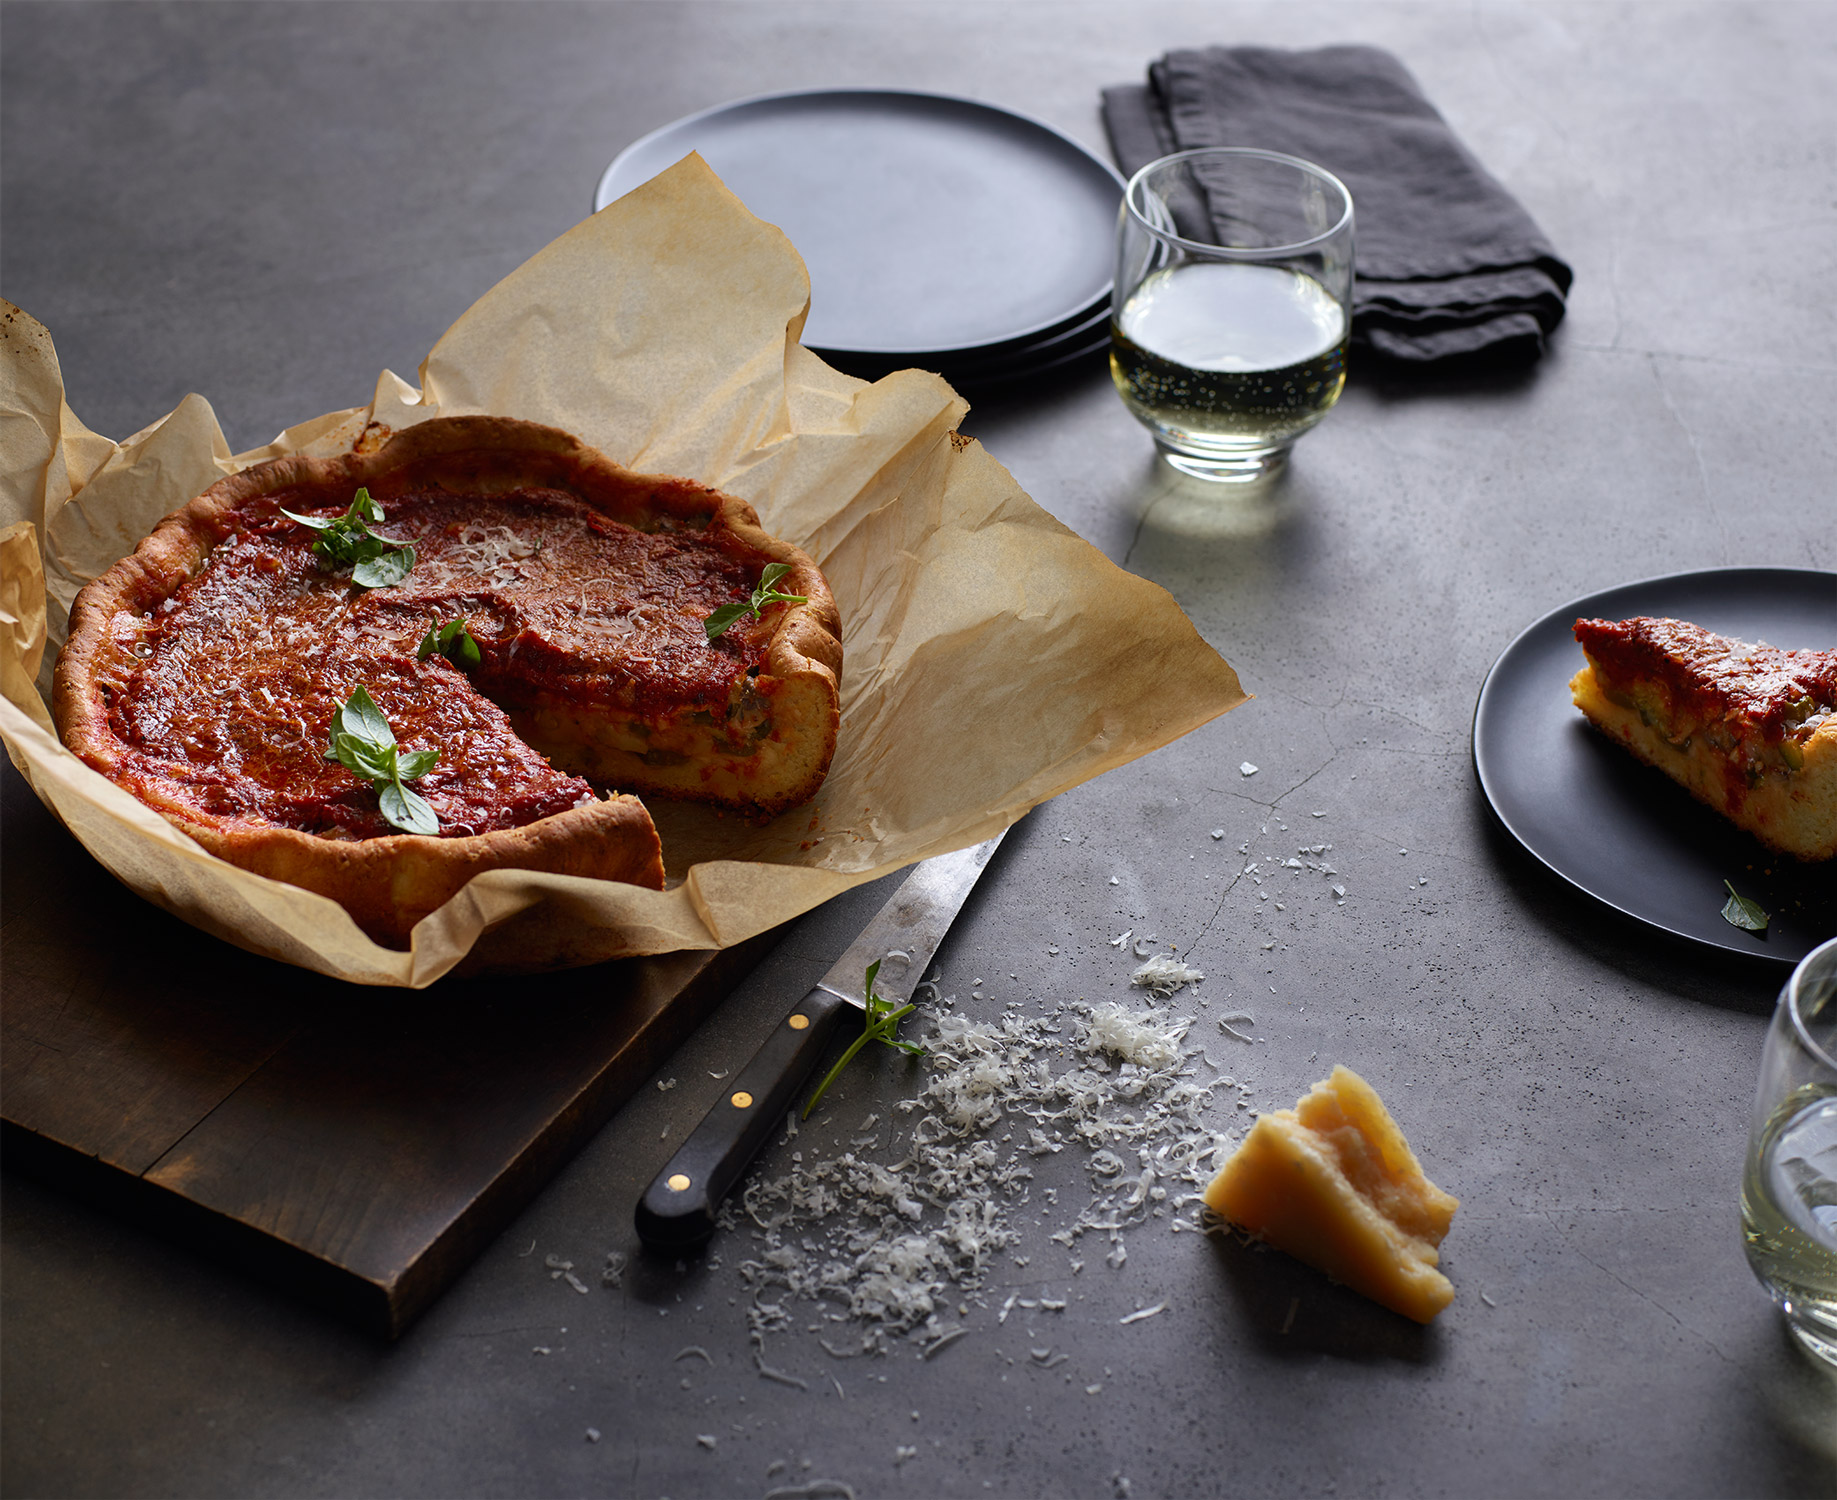 Food: Deep Dish Pizza